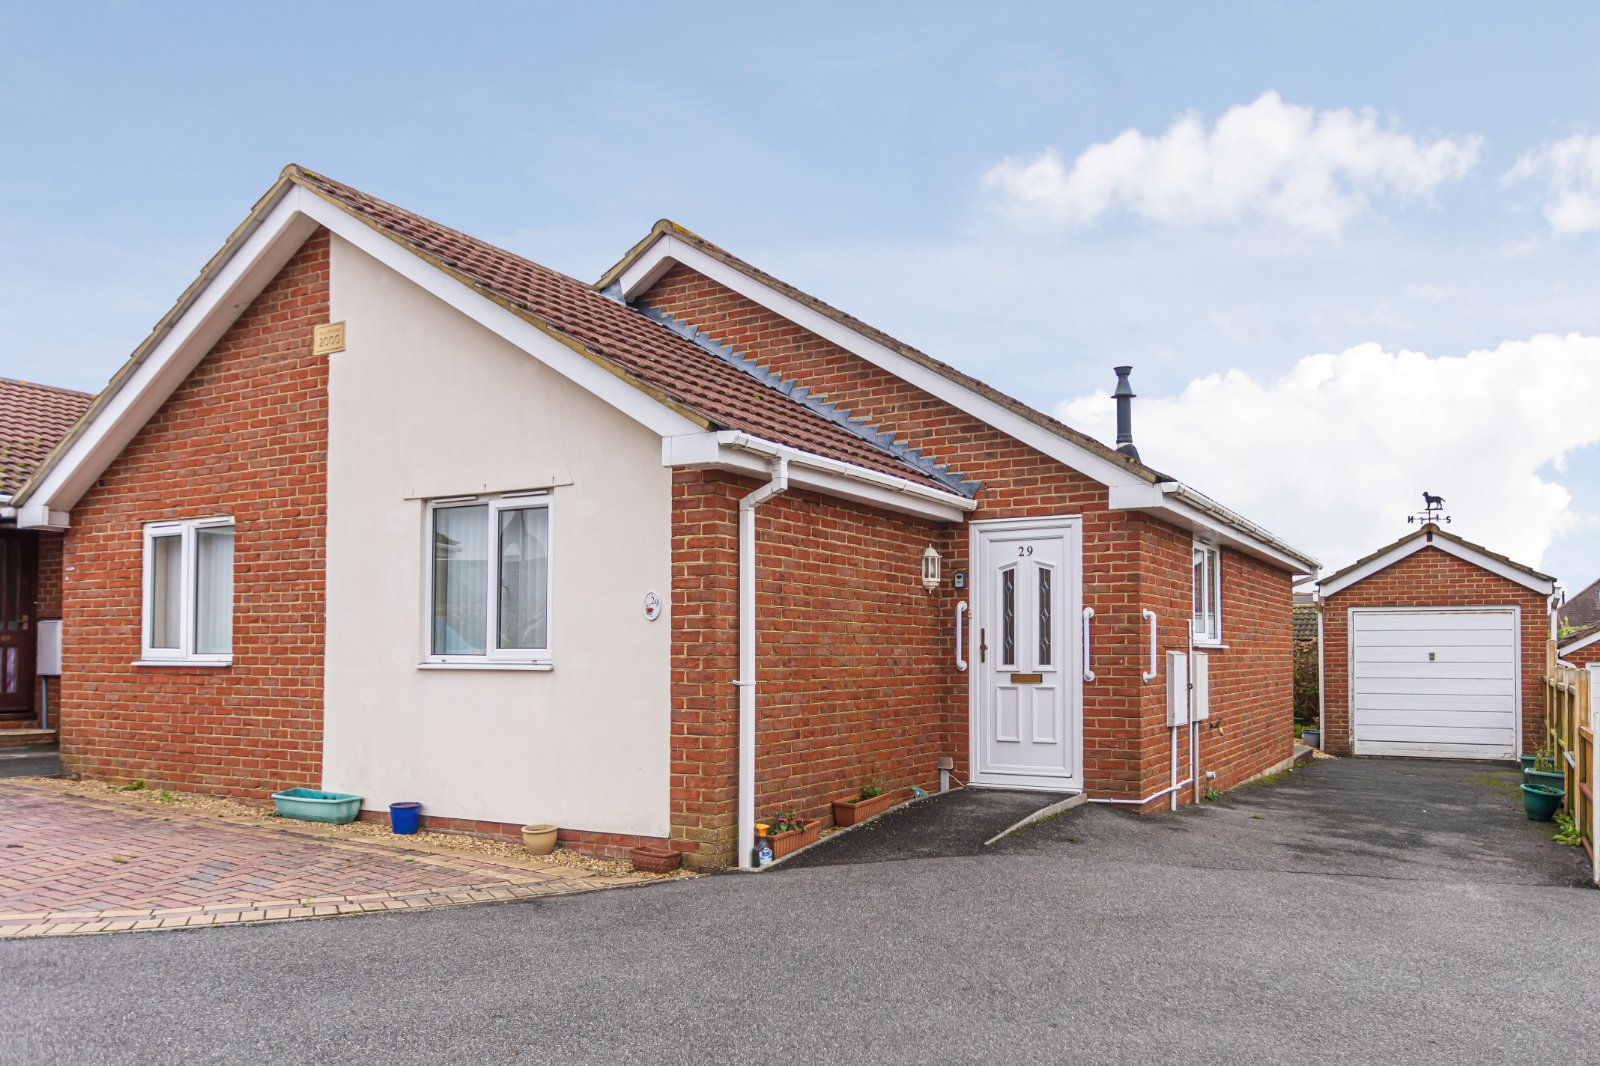 3 bed bungalow for sale in Brixey Close, Poole  - Property Image 4